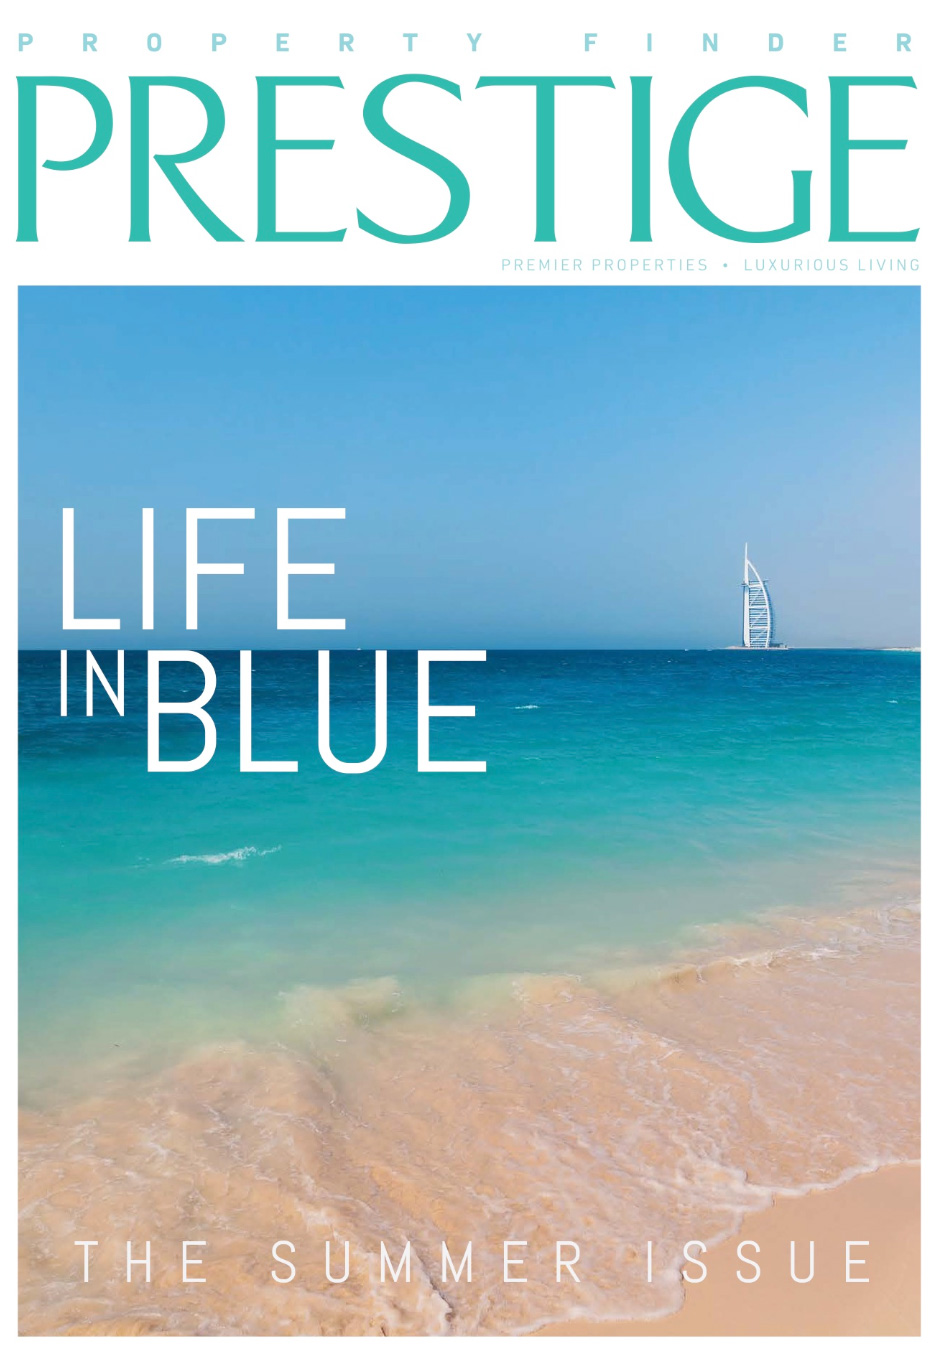 prestige issue 41